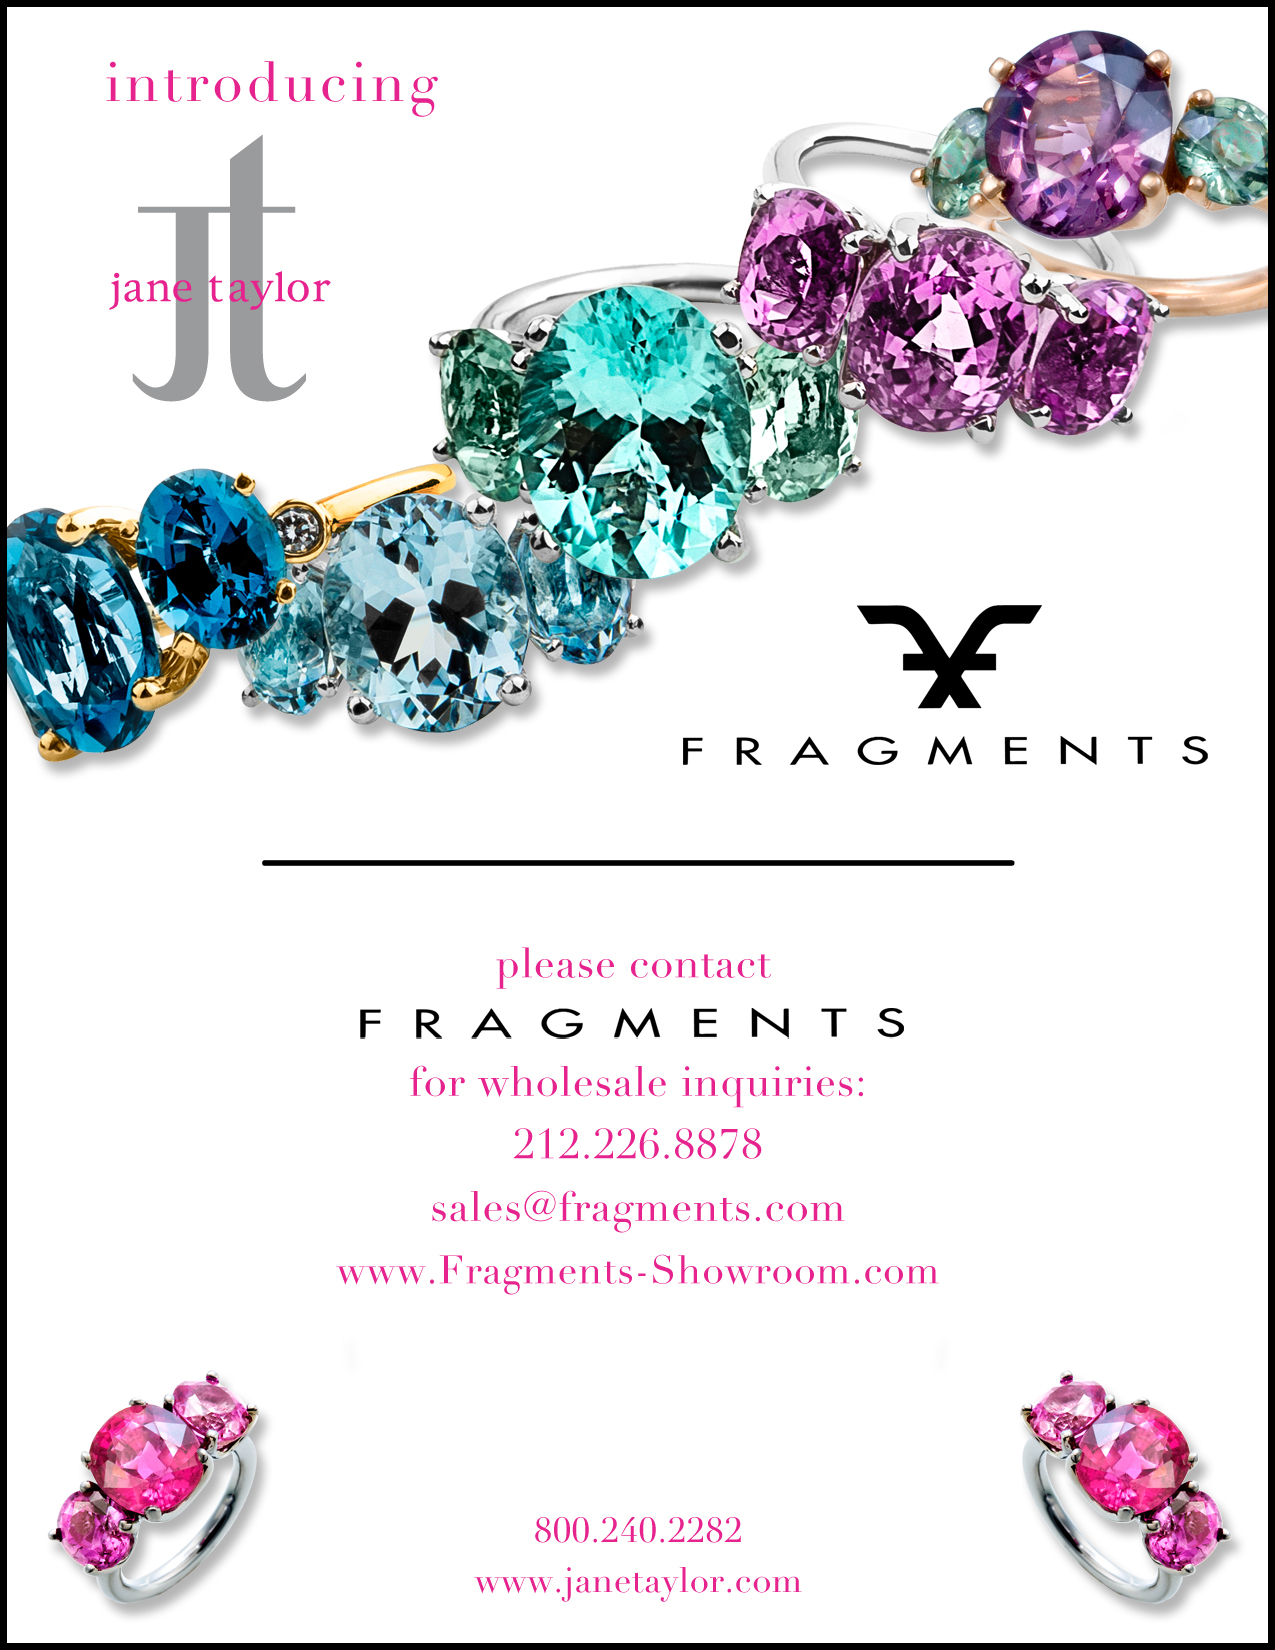 Introducing Jane Taylor Jewelry at Fragments